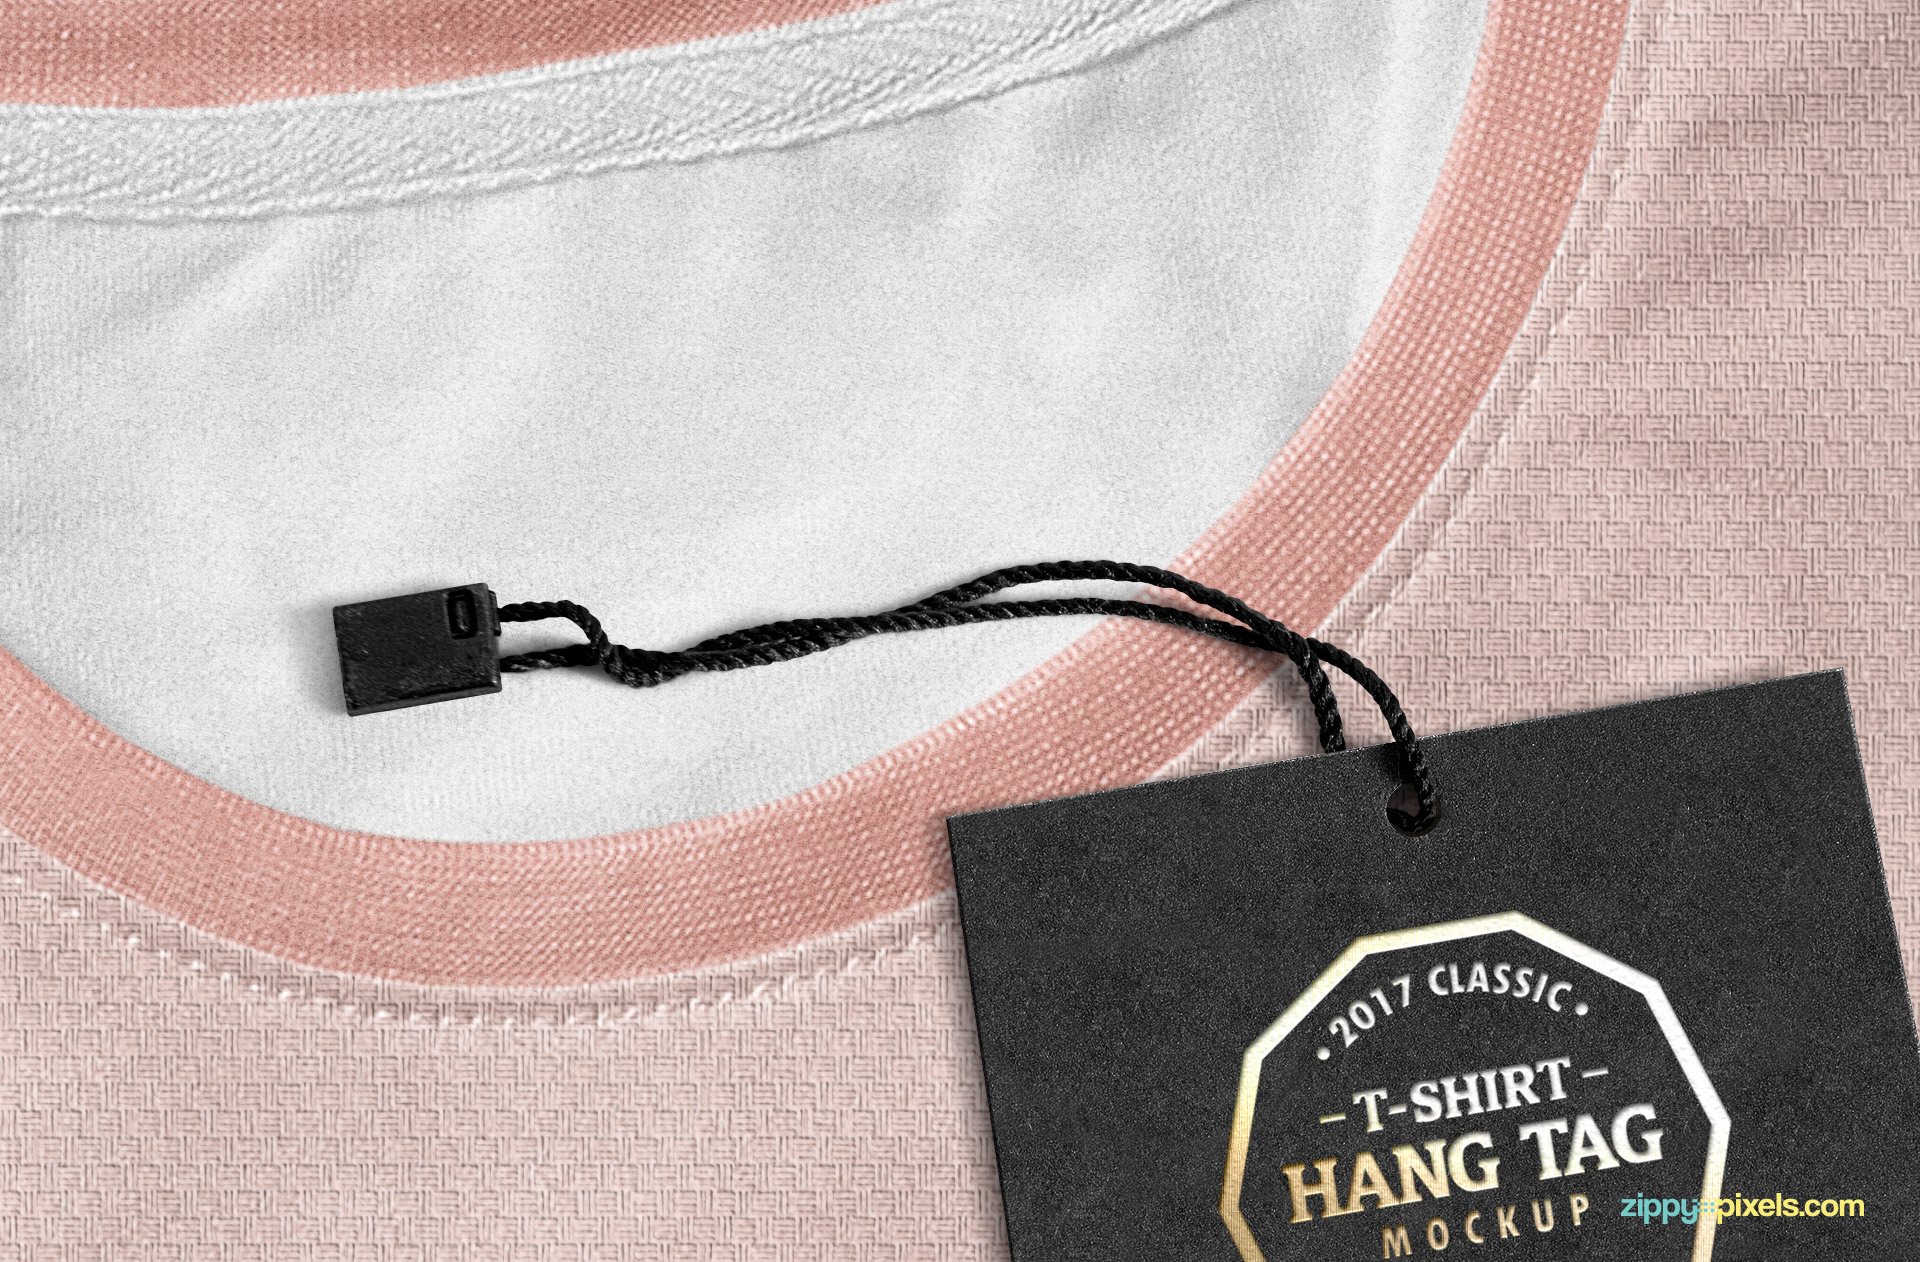 Customizable string of clothing tag.